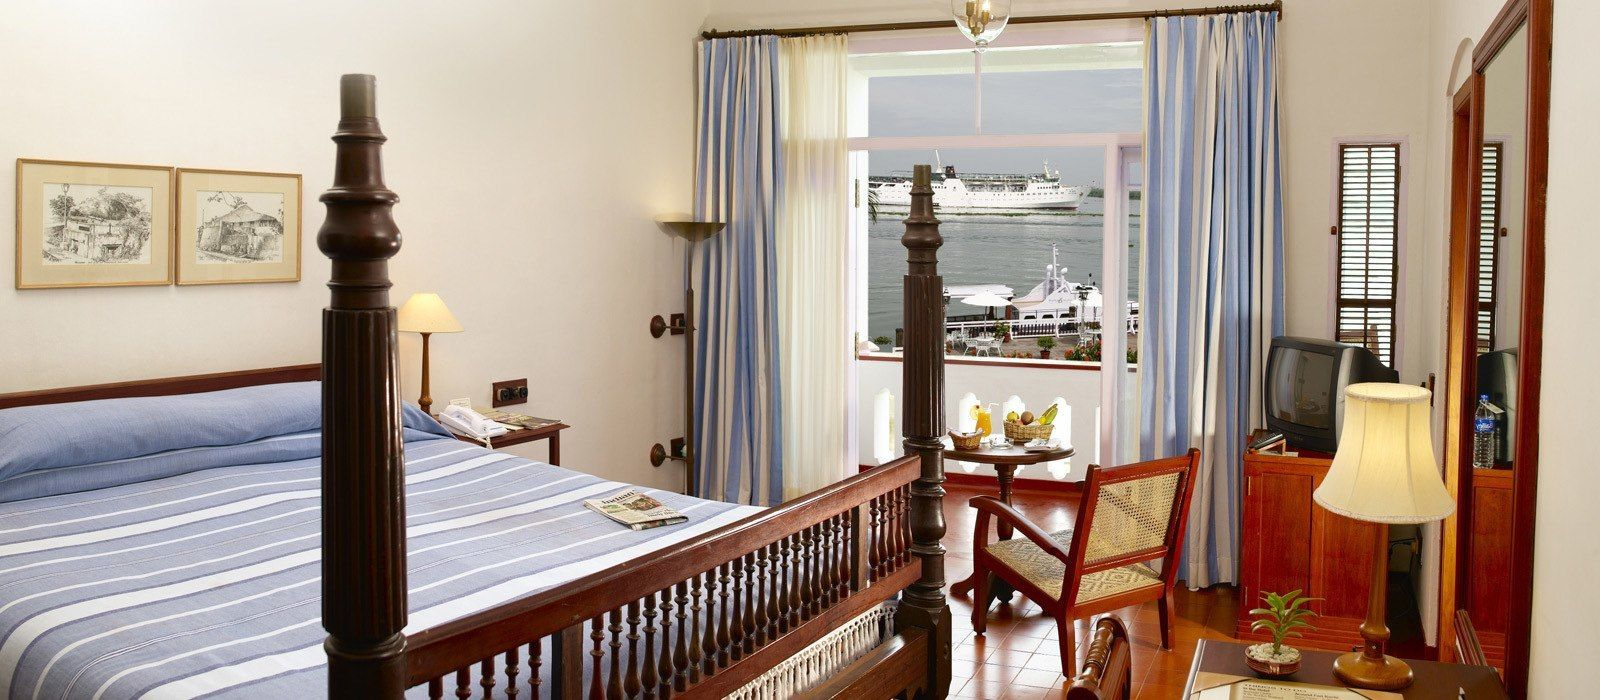 Hotel Brunton Boatyard South India